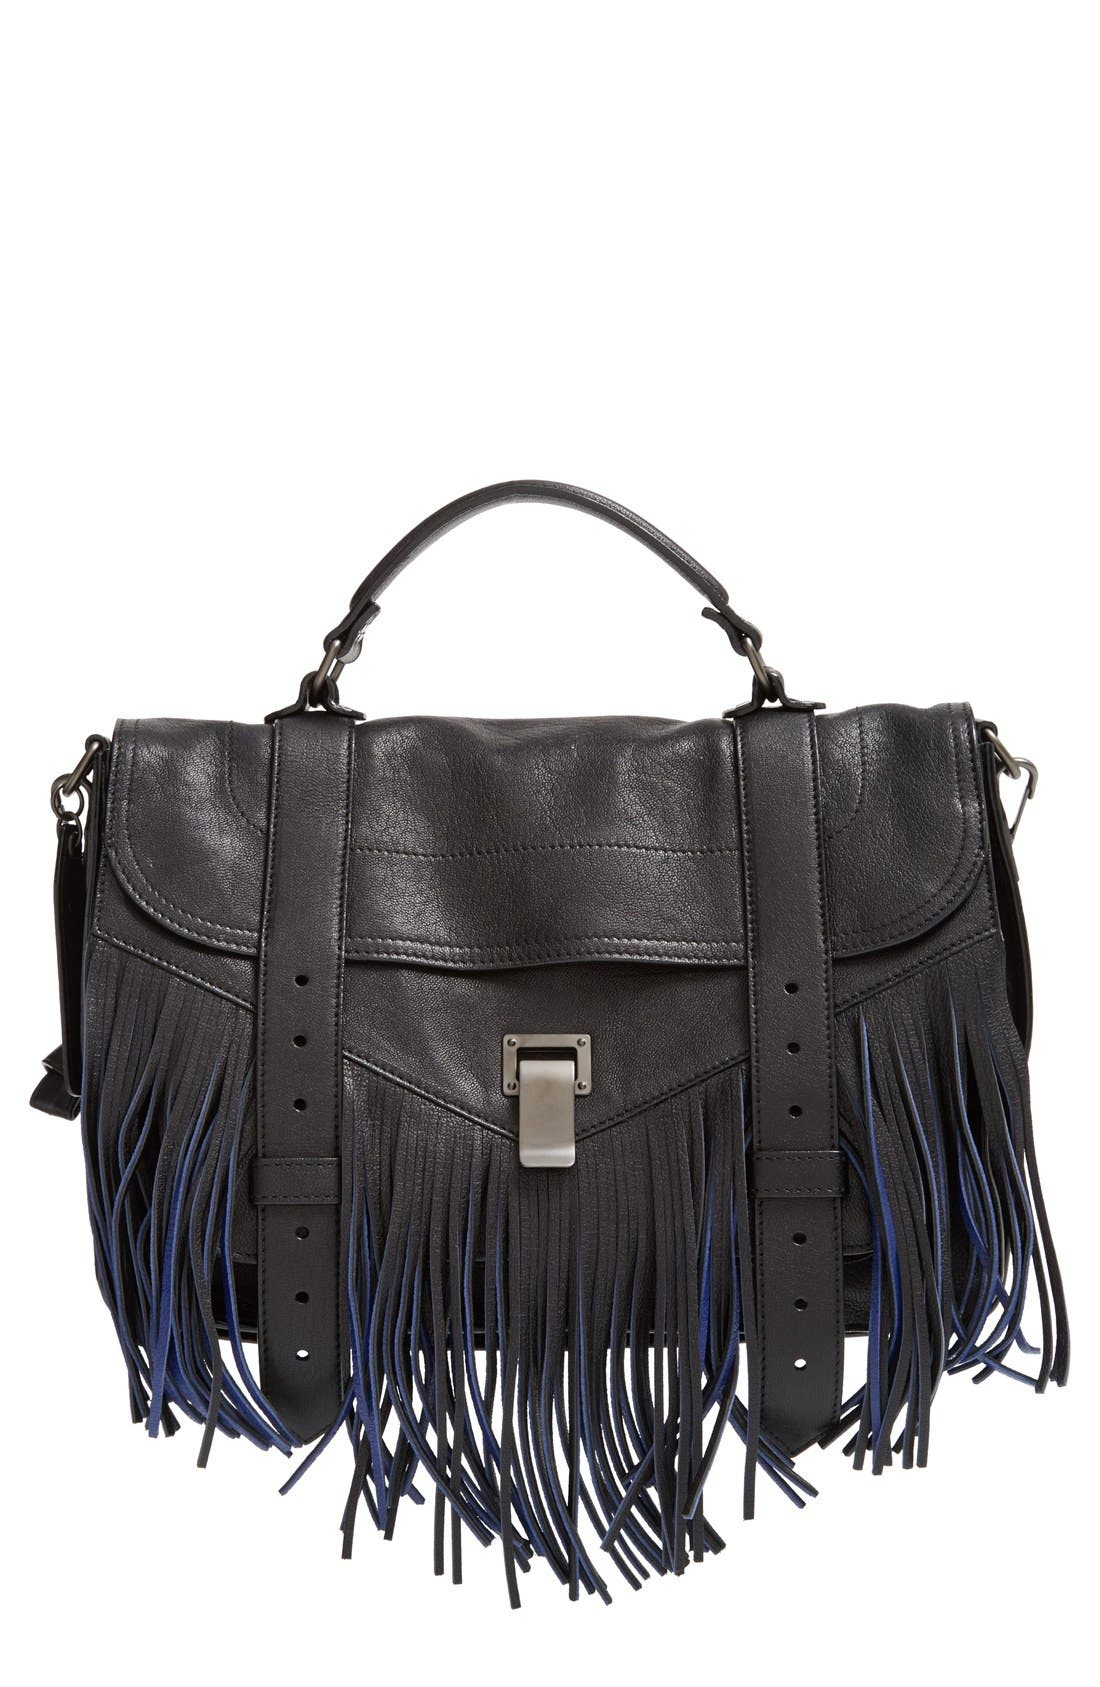 Main Image - Proenza Schouler 'Medium PS1' Fringe Leather Satchel